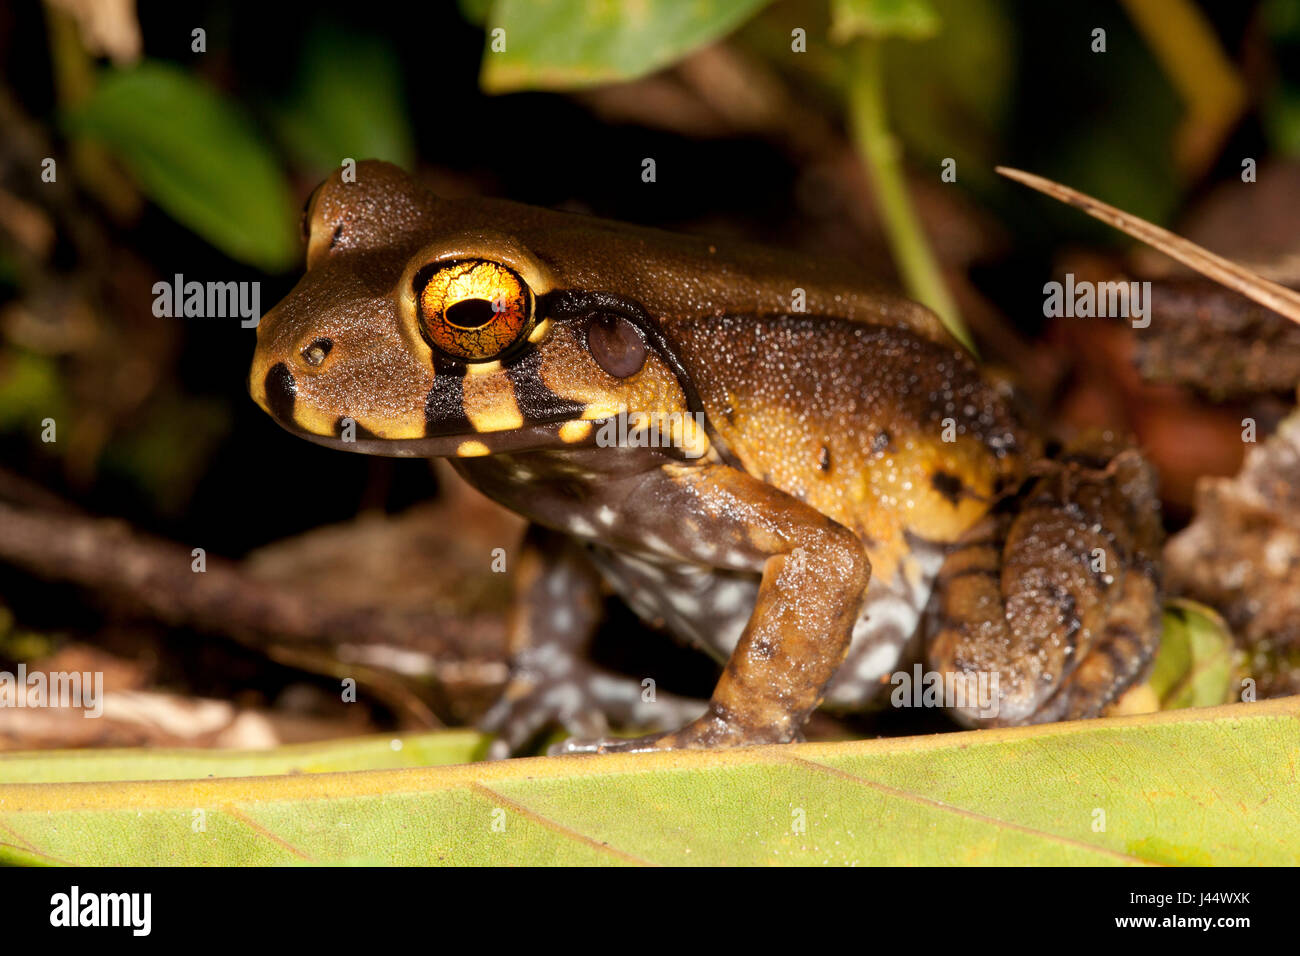 Photo of a Knudsen's thin-toed frog - Stock Image